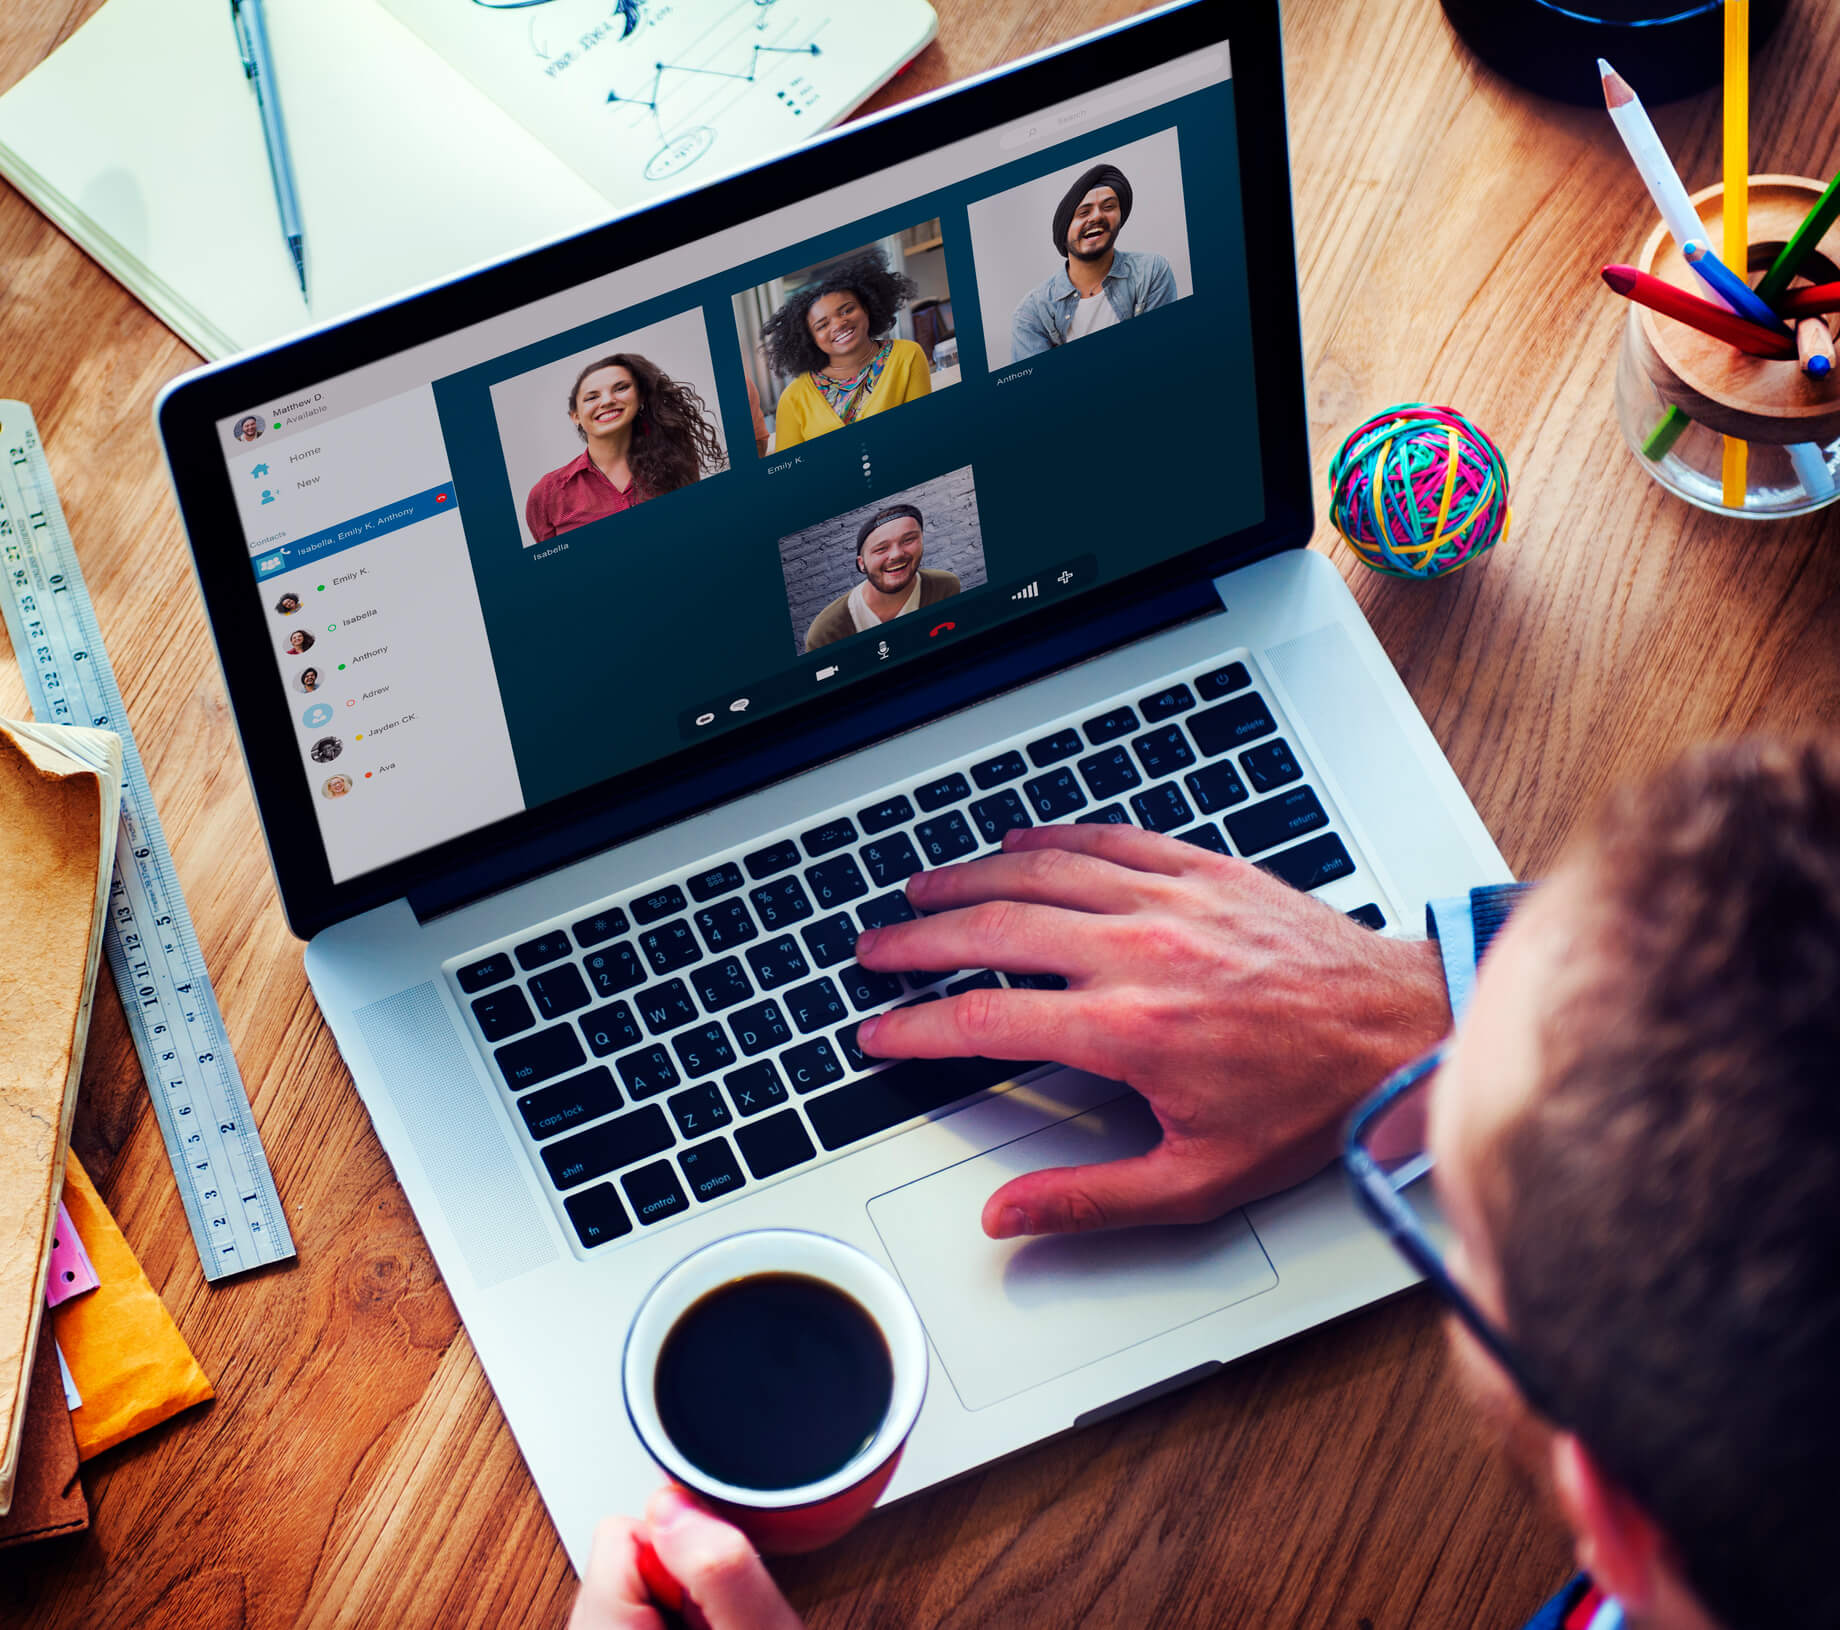 online qual - online focus group video chat conference call